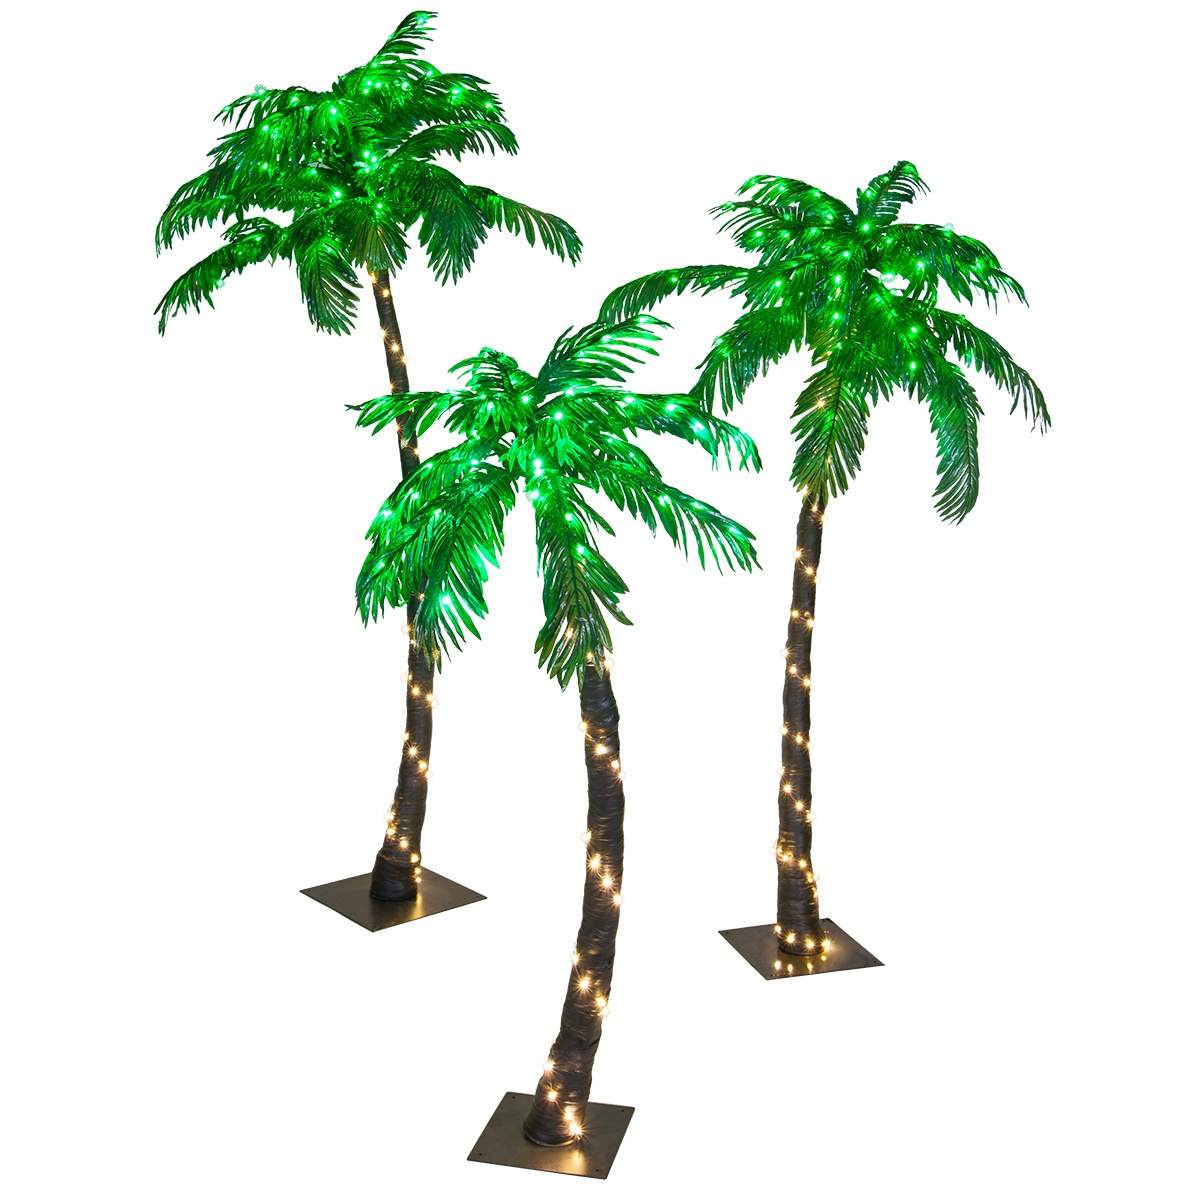 Curved LED Lighted Palm Tree with Green Canopy - Yard Envy